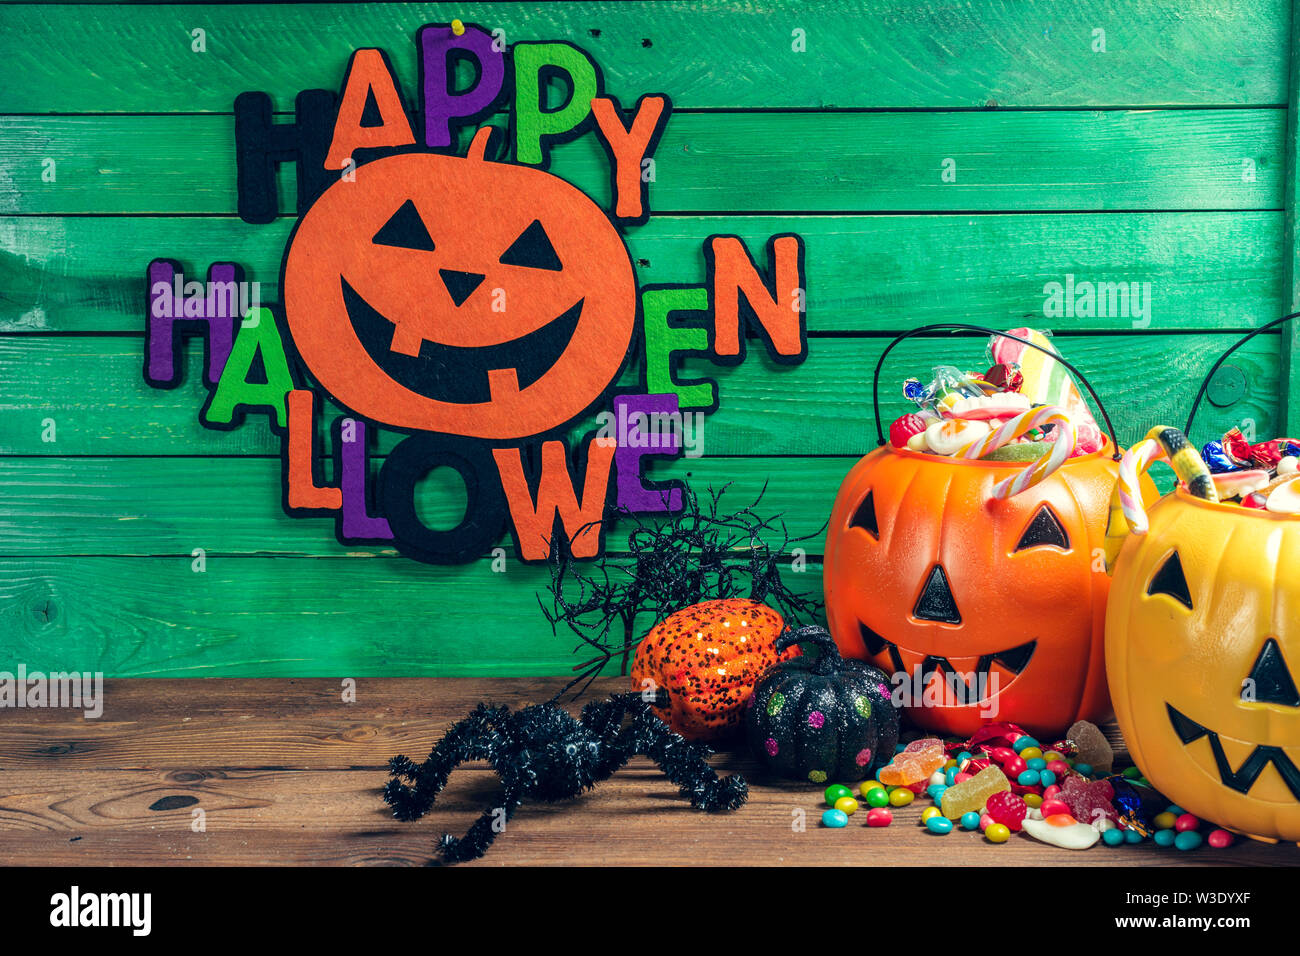 Happy Halloween Pumpkin With Candy In The Home Stock Photo Alamy